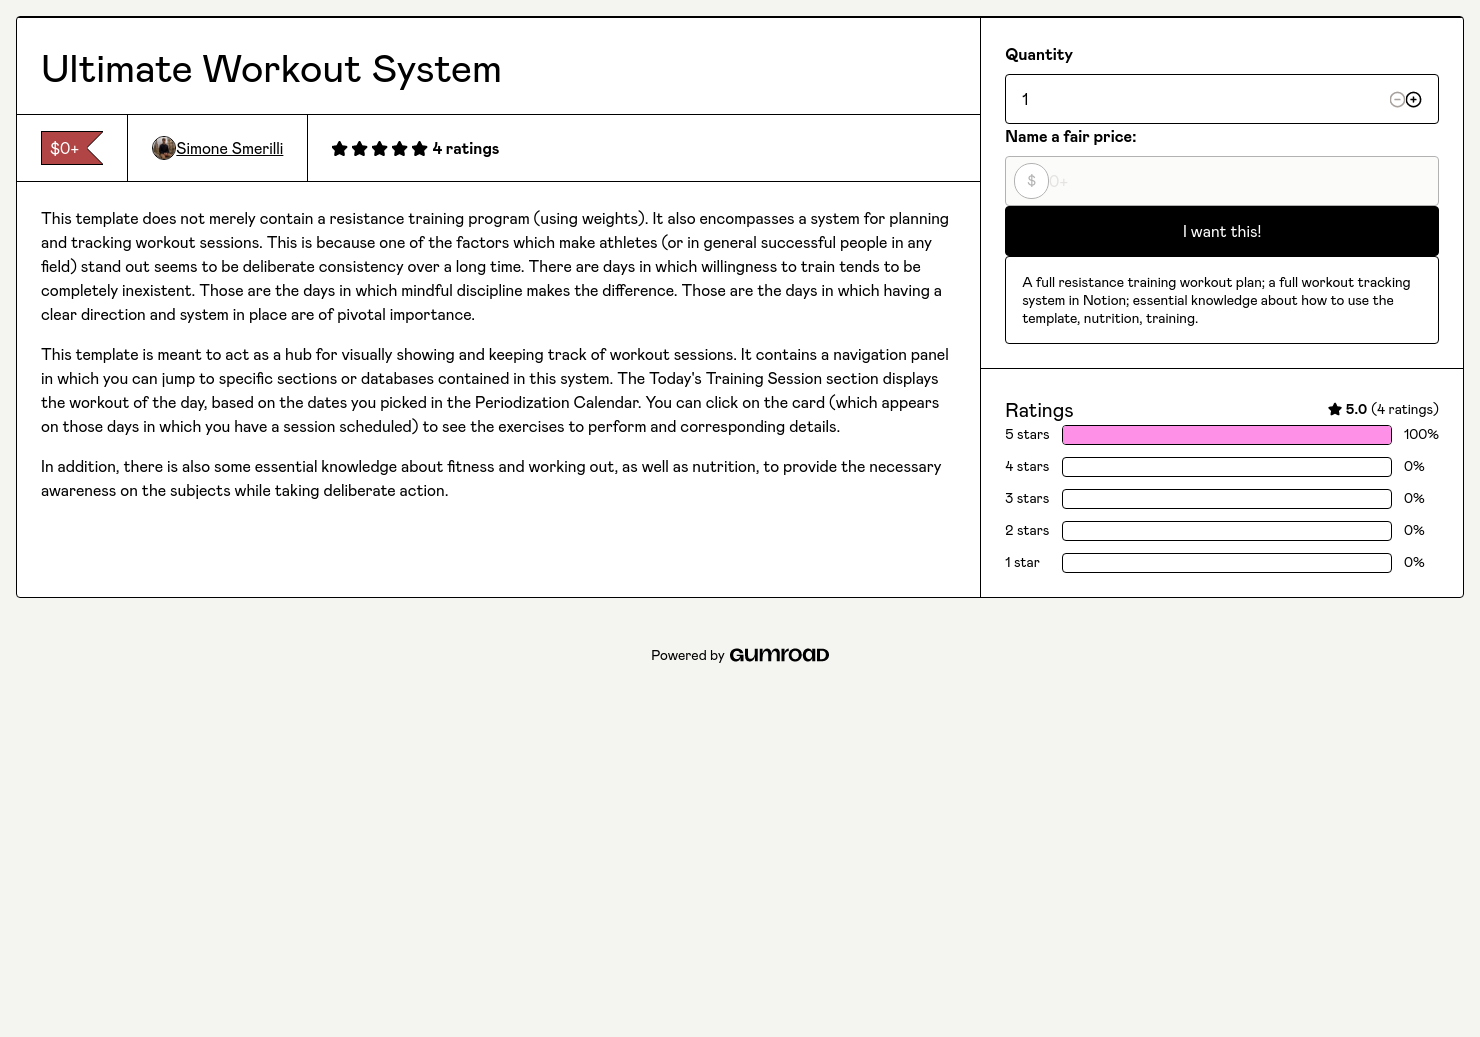 Ultimate Notion Workout System